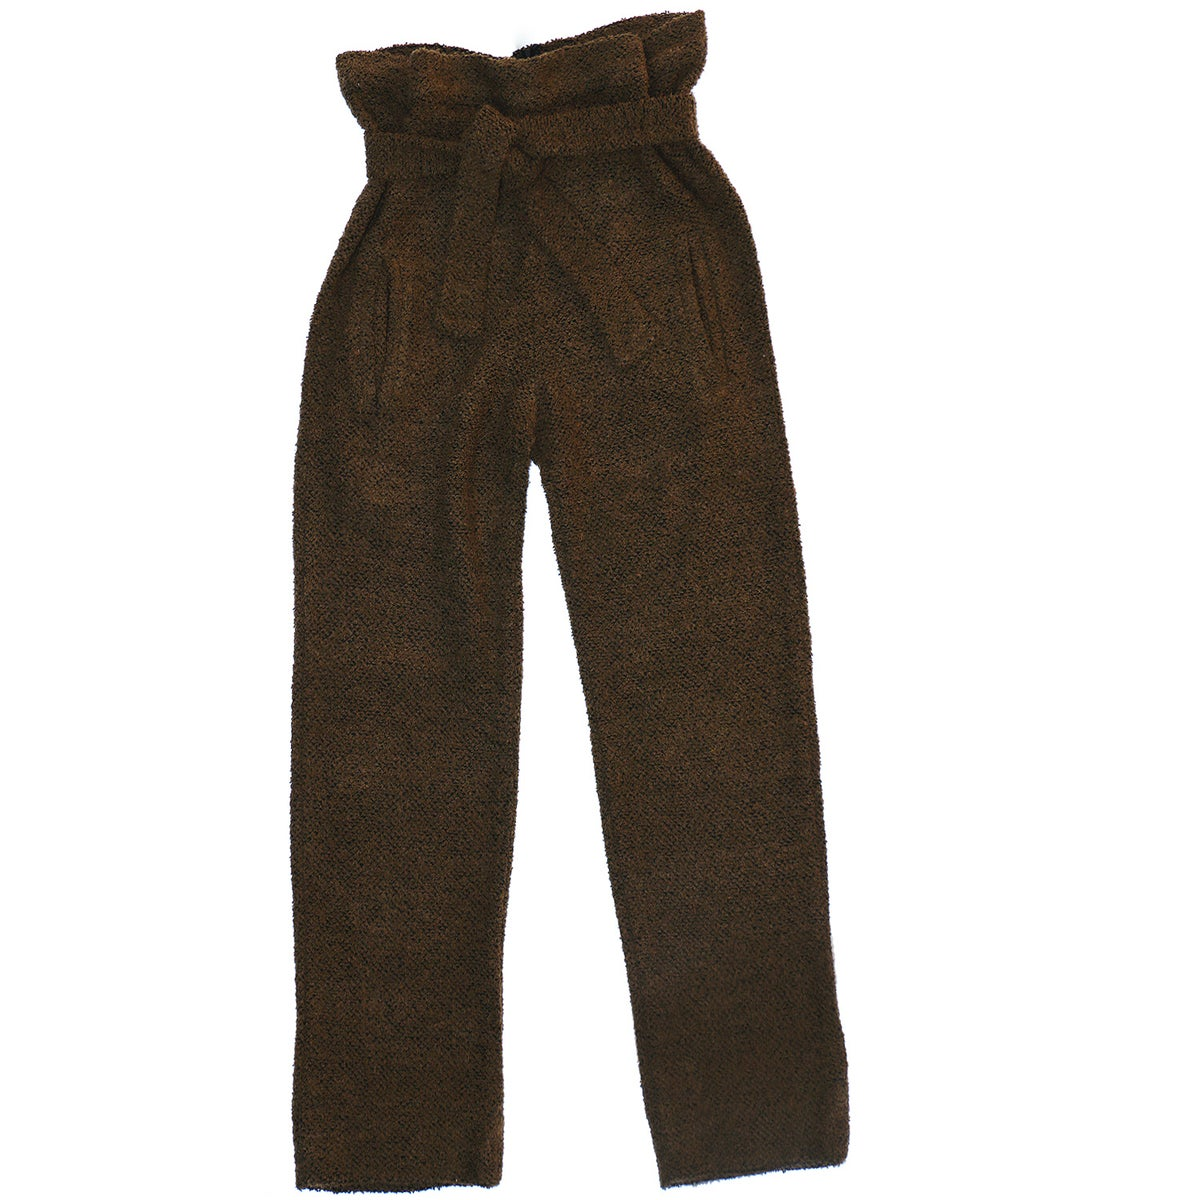 COZY'BAE OVERSIZED SACK WAIST TROUSERS- OLIVE/BROWN